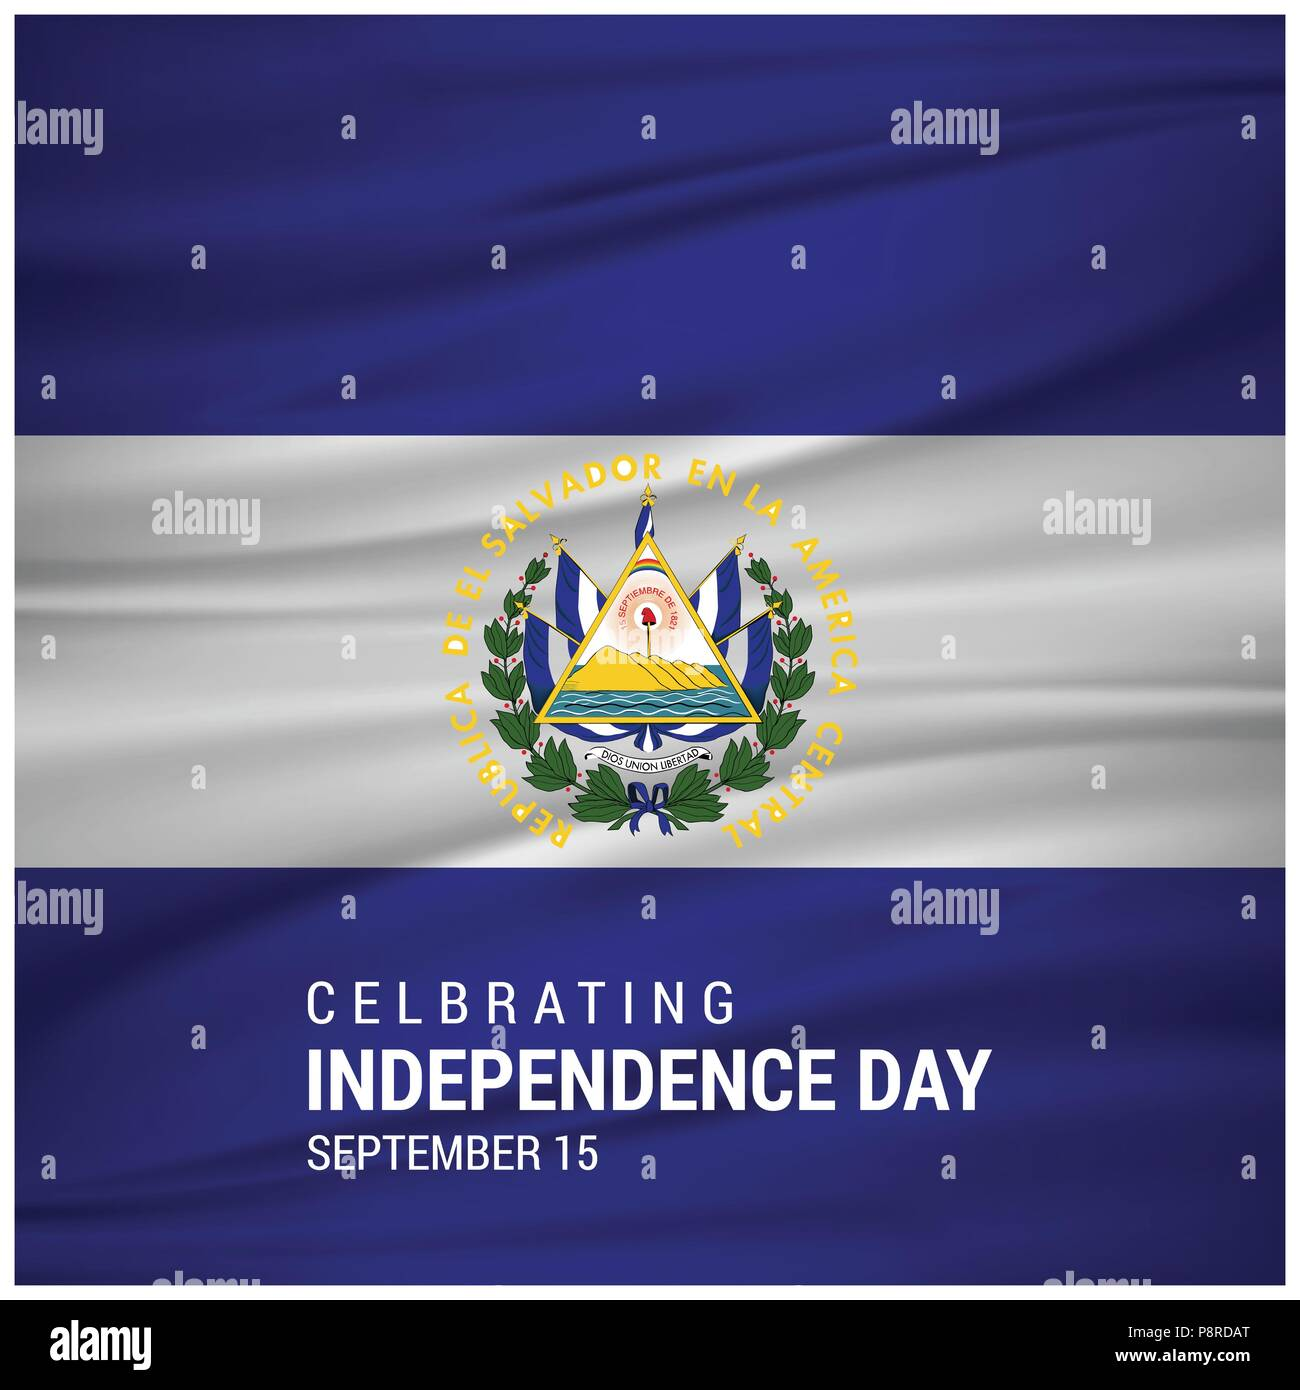 Independence day of El Salvador. Patriotic Banner. Vector illustration. For web design and application interface, also useful for infographics. Vector - Stock Image